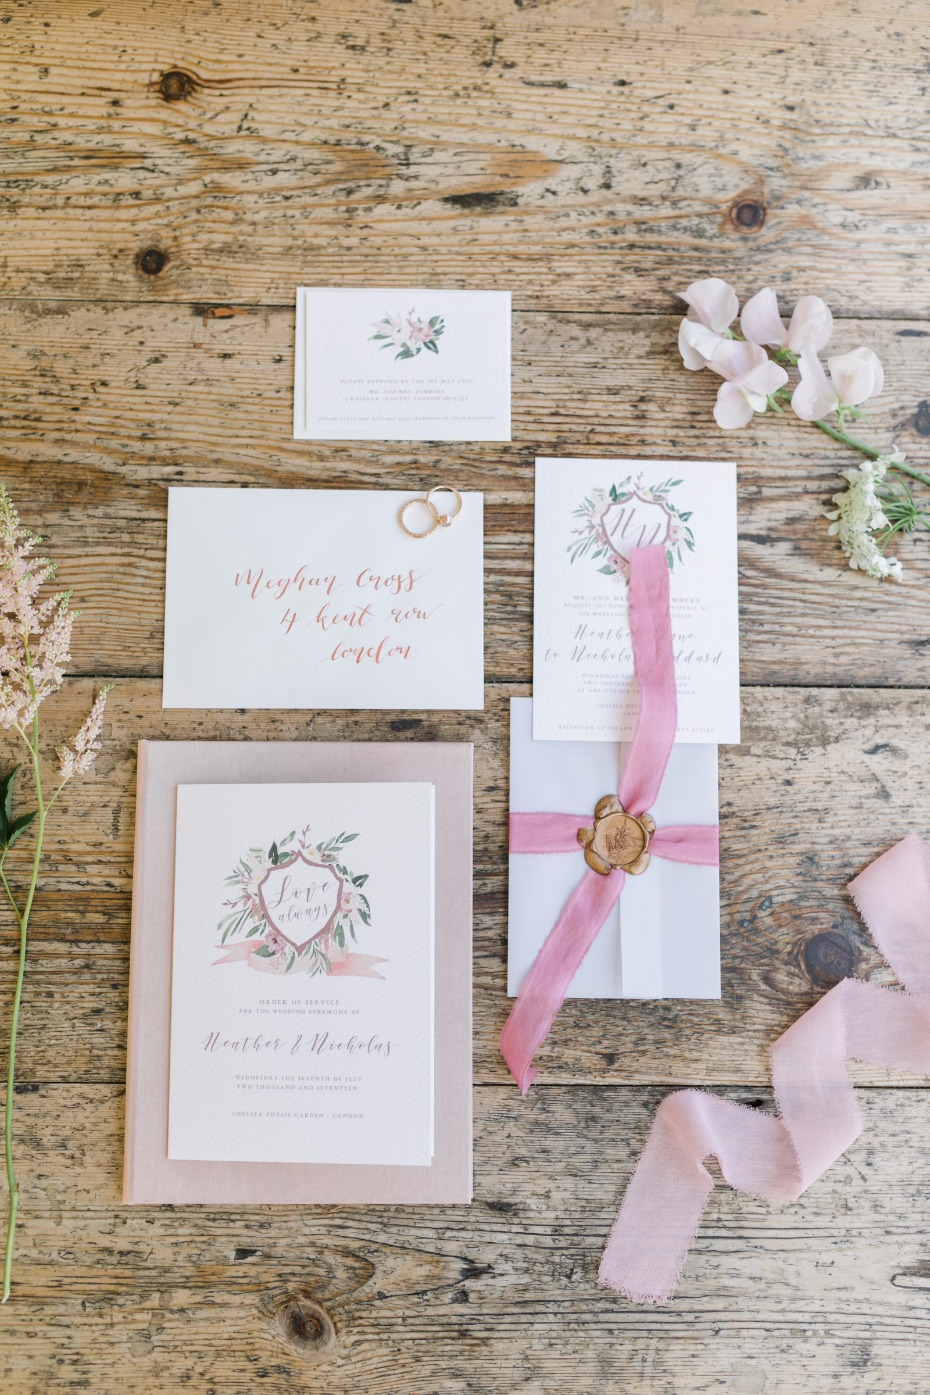 Whimsical garden invitation suite